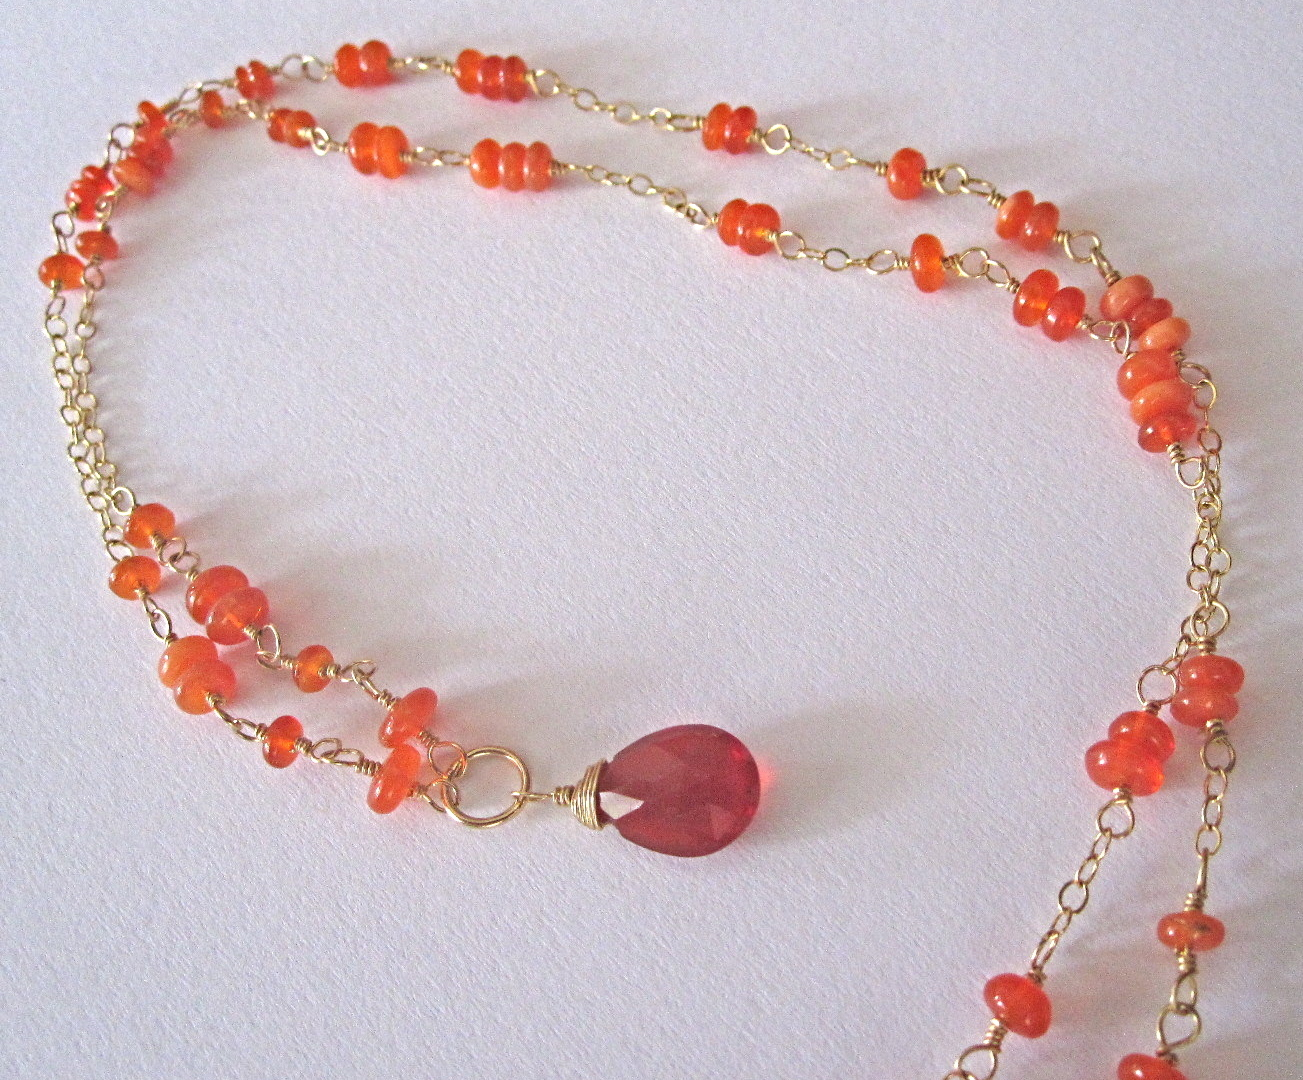 18K Solid Gold~AAA Mexican Fire Opal Necklace~ One of a kind